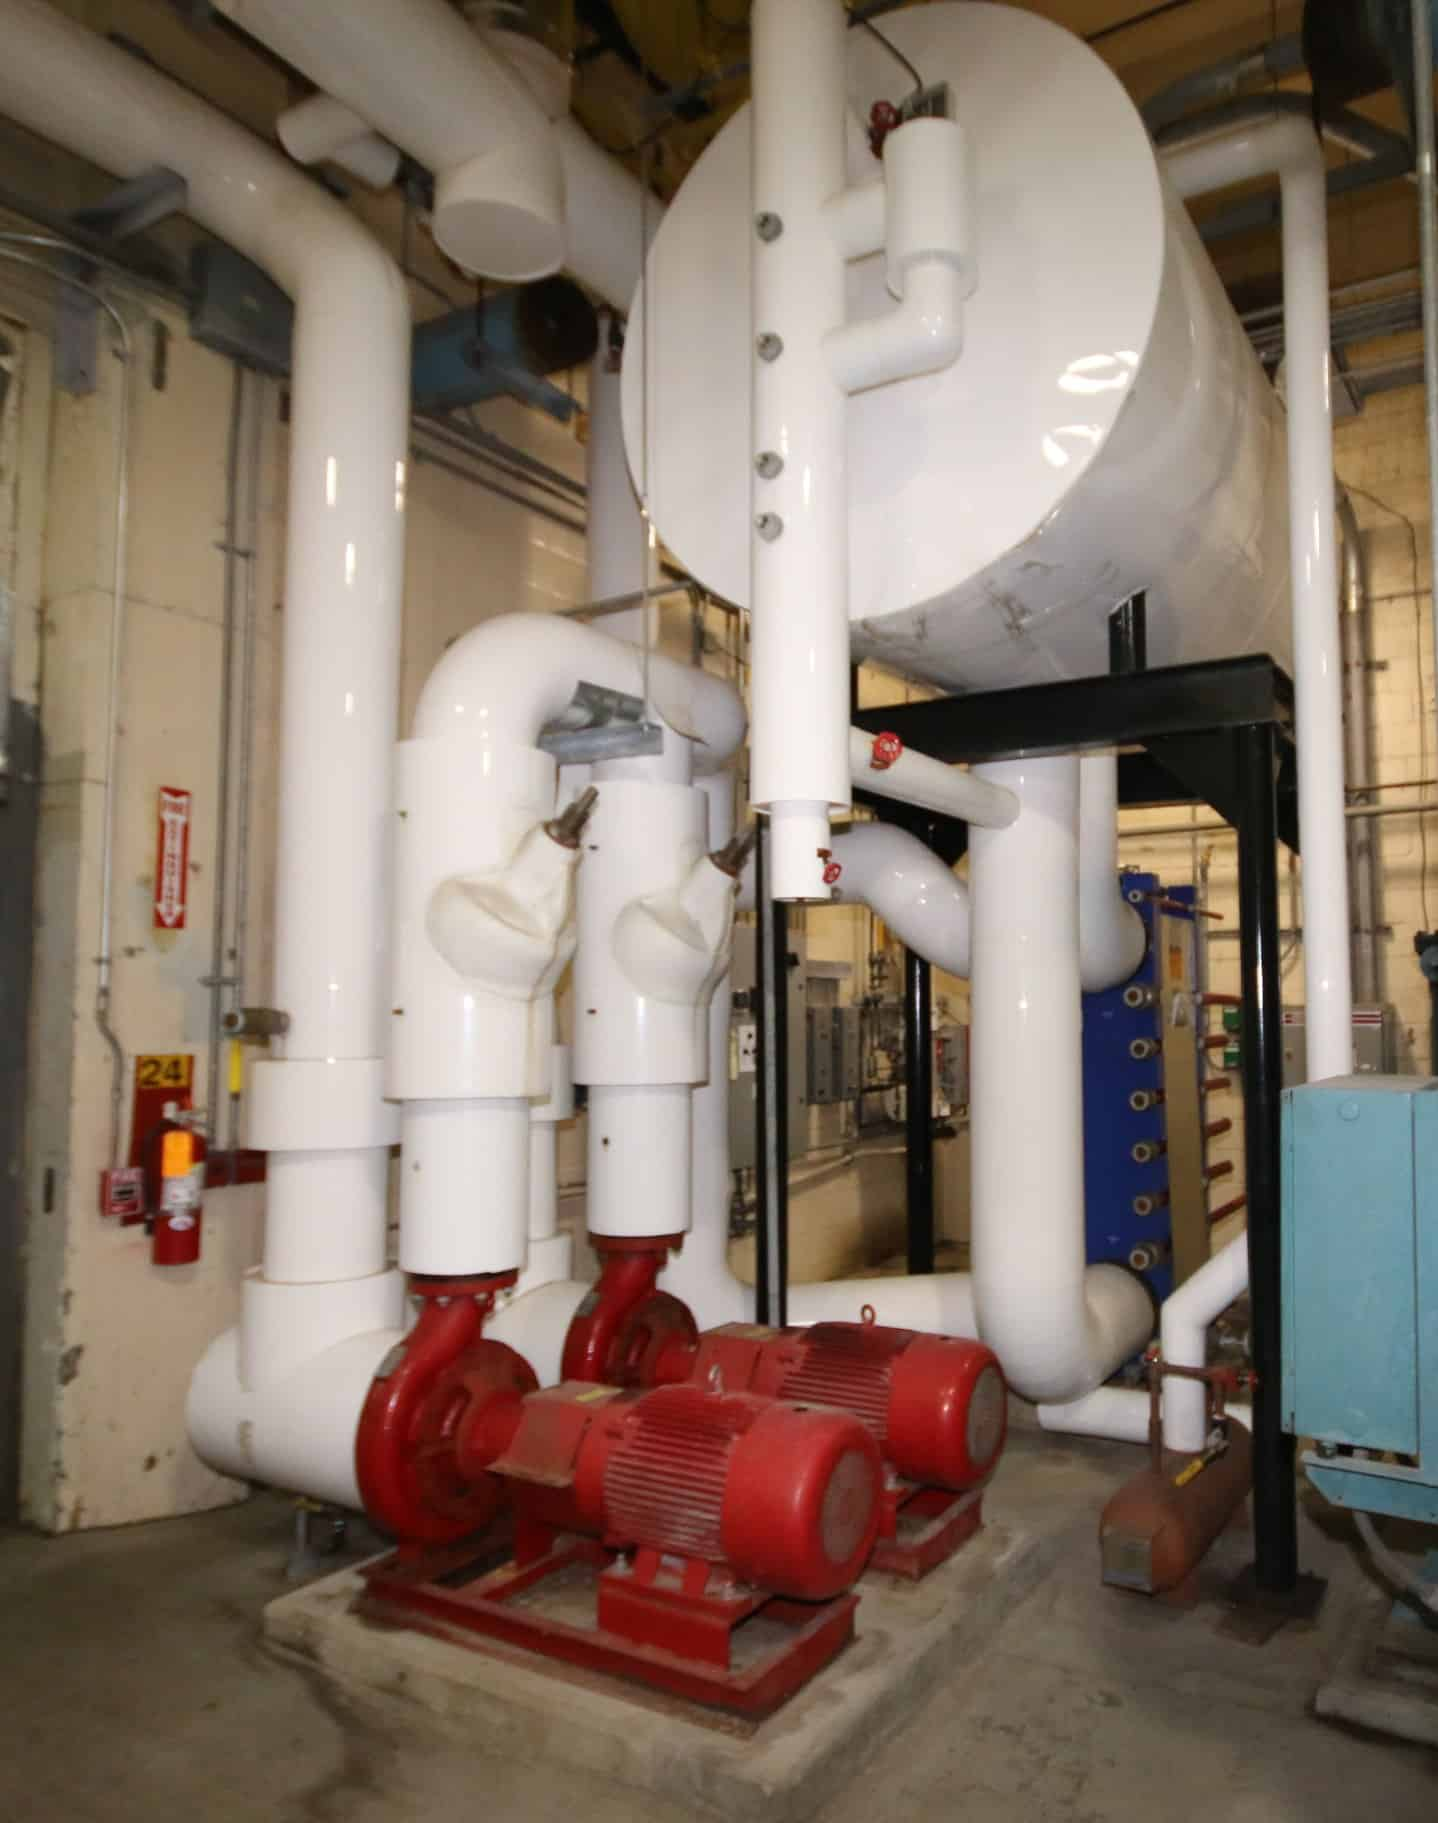 2010 Ammonia (NH3) Cooled Glycol System with Alfa Laval Model T20-BWFS, SN 30112-51394 Plate Press, Top Mounted Ammonia Accumulator, (2) Armstrong 50 hp Circulation Pumps & IRS Controls with Cutler Hammer VFD